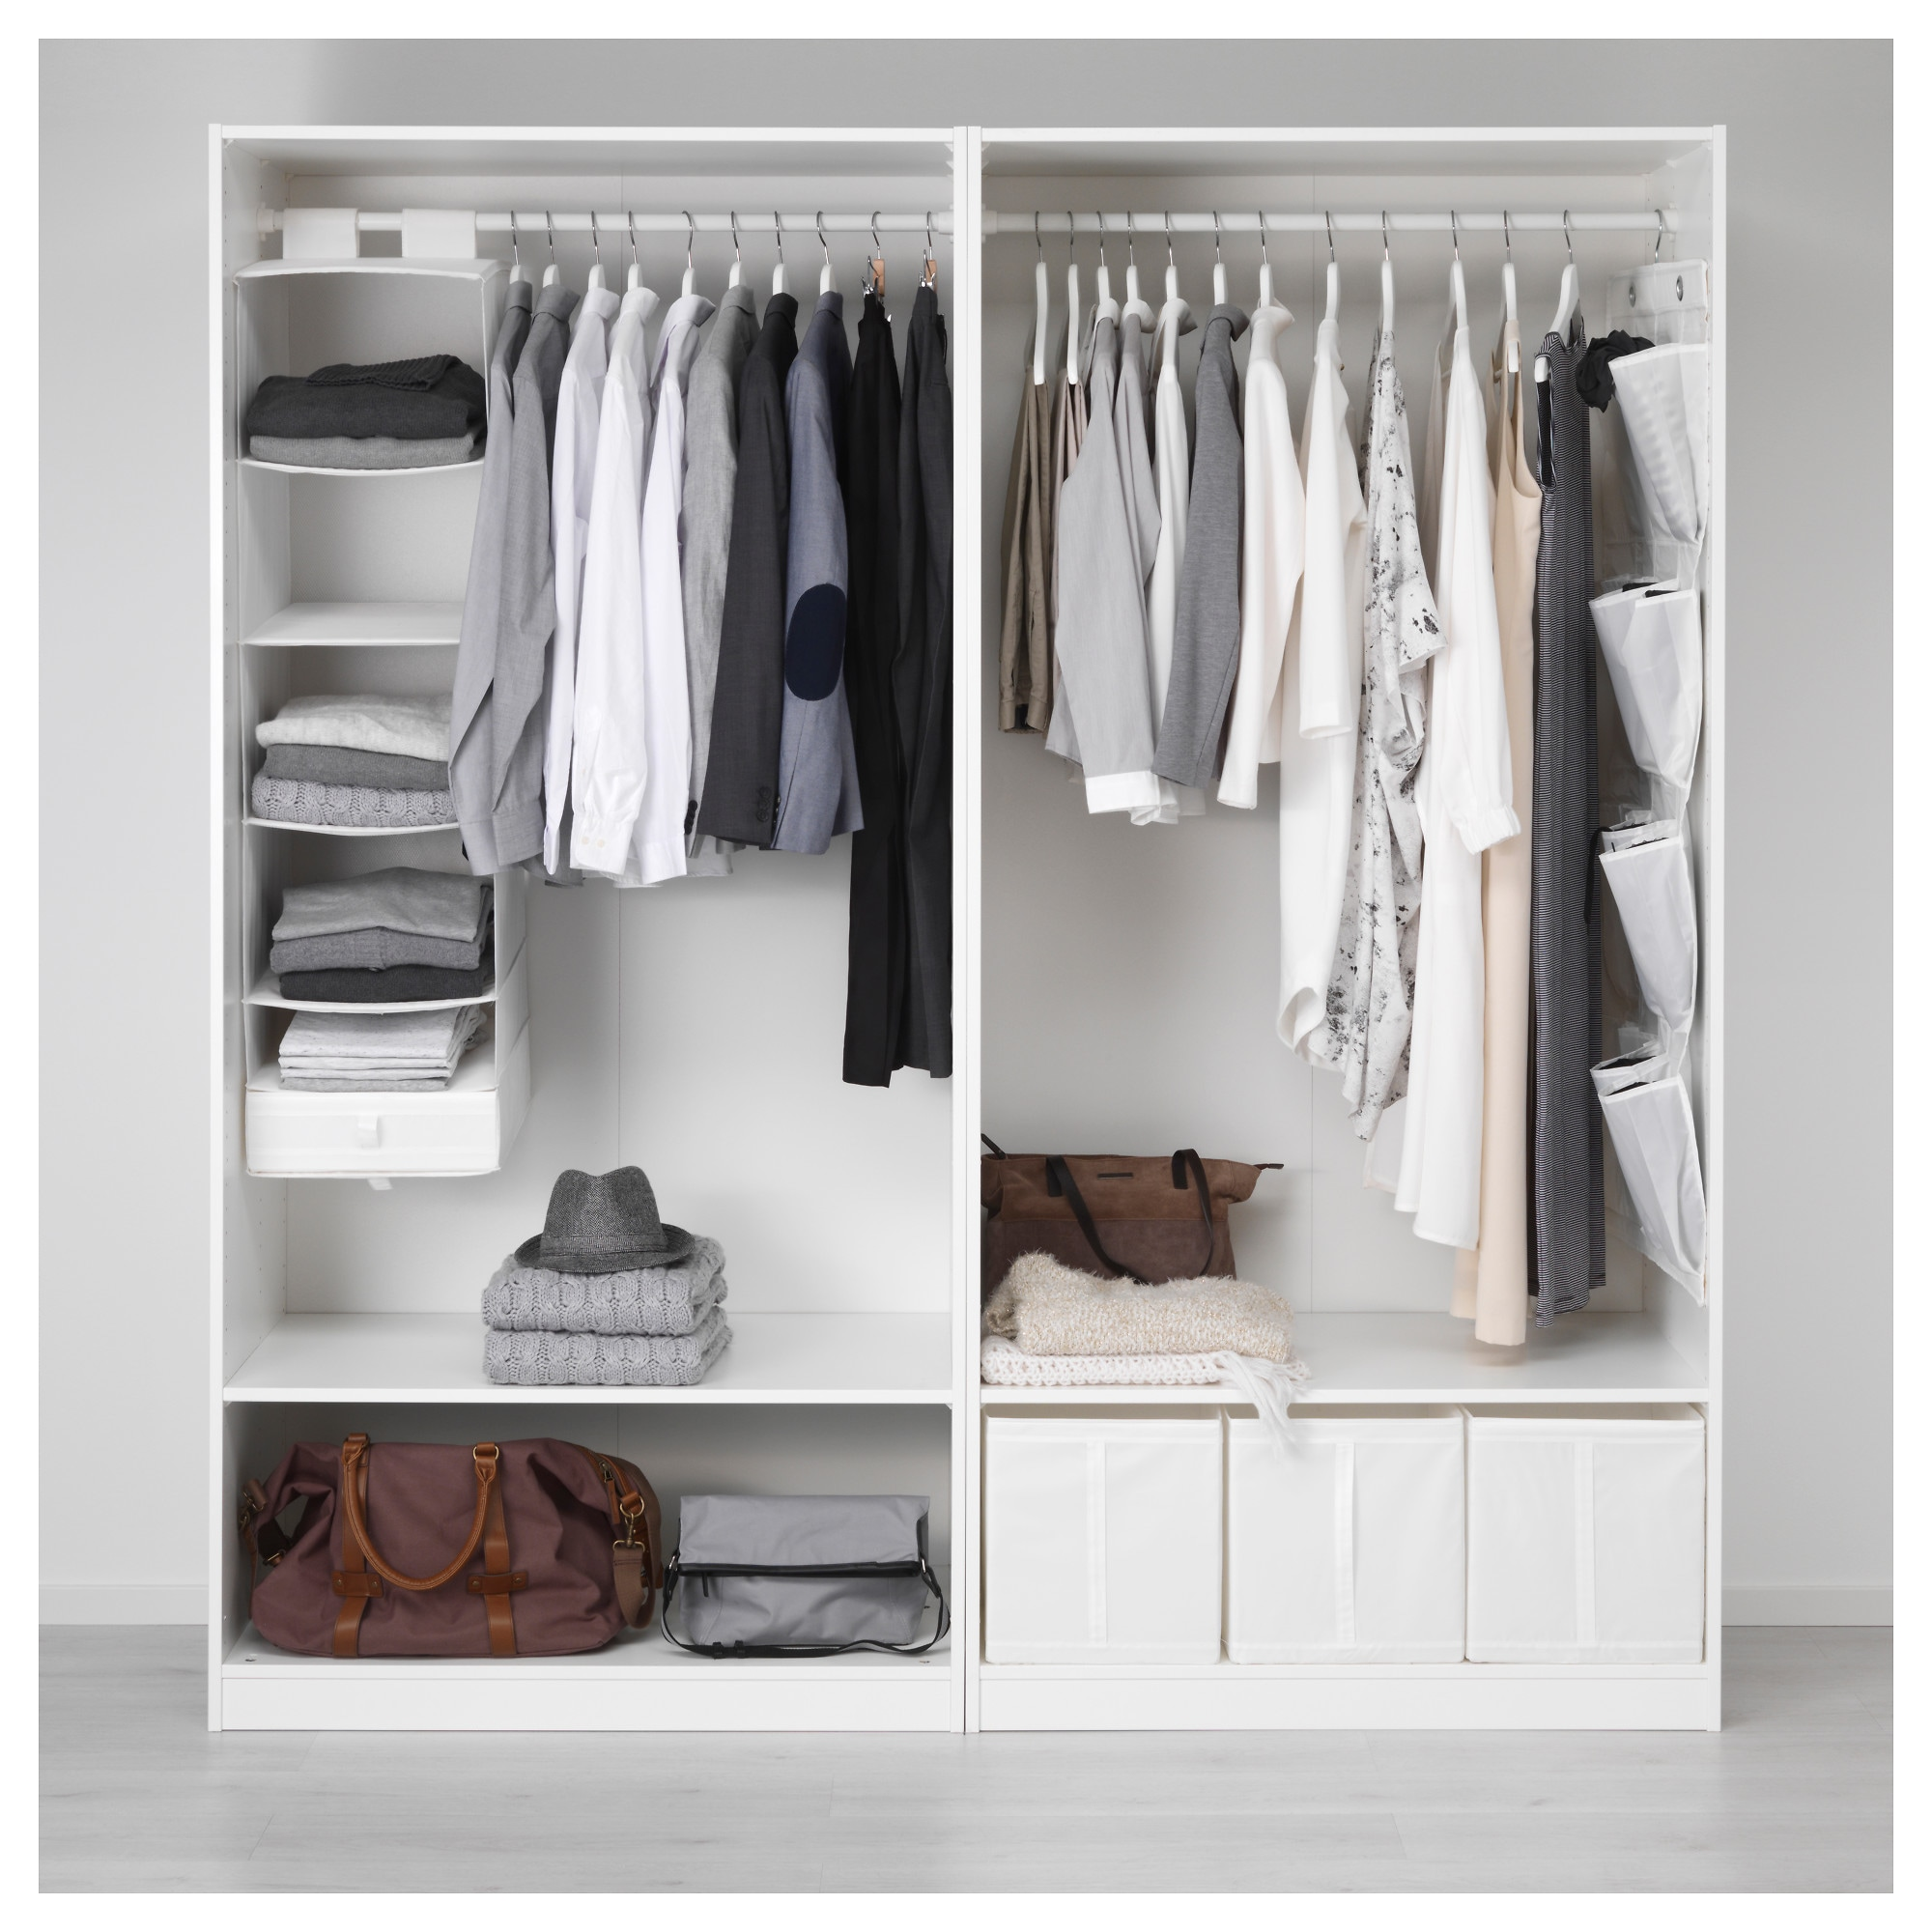 ikea built images related system closet wardrobes photos singapore pax wardrobe systems diyiz top in mesmerizing